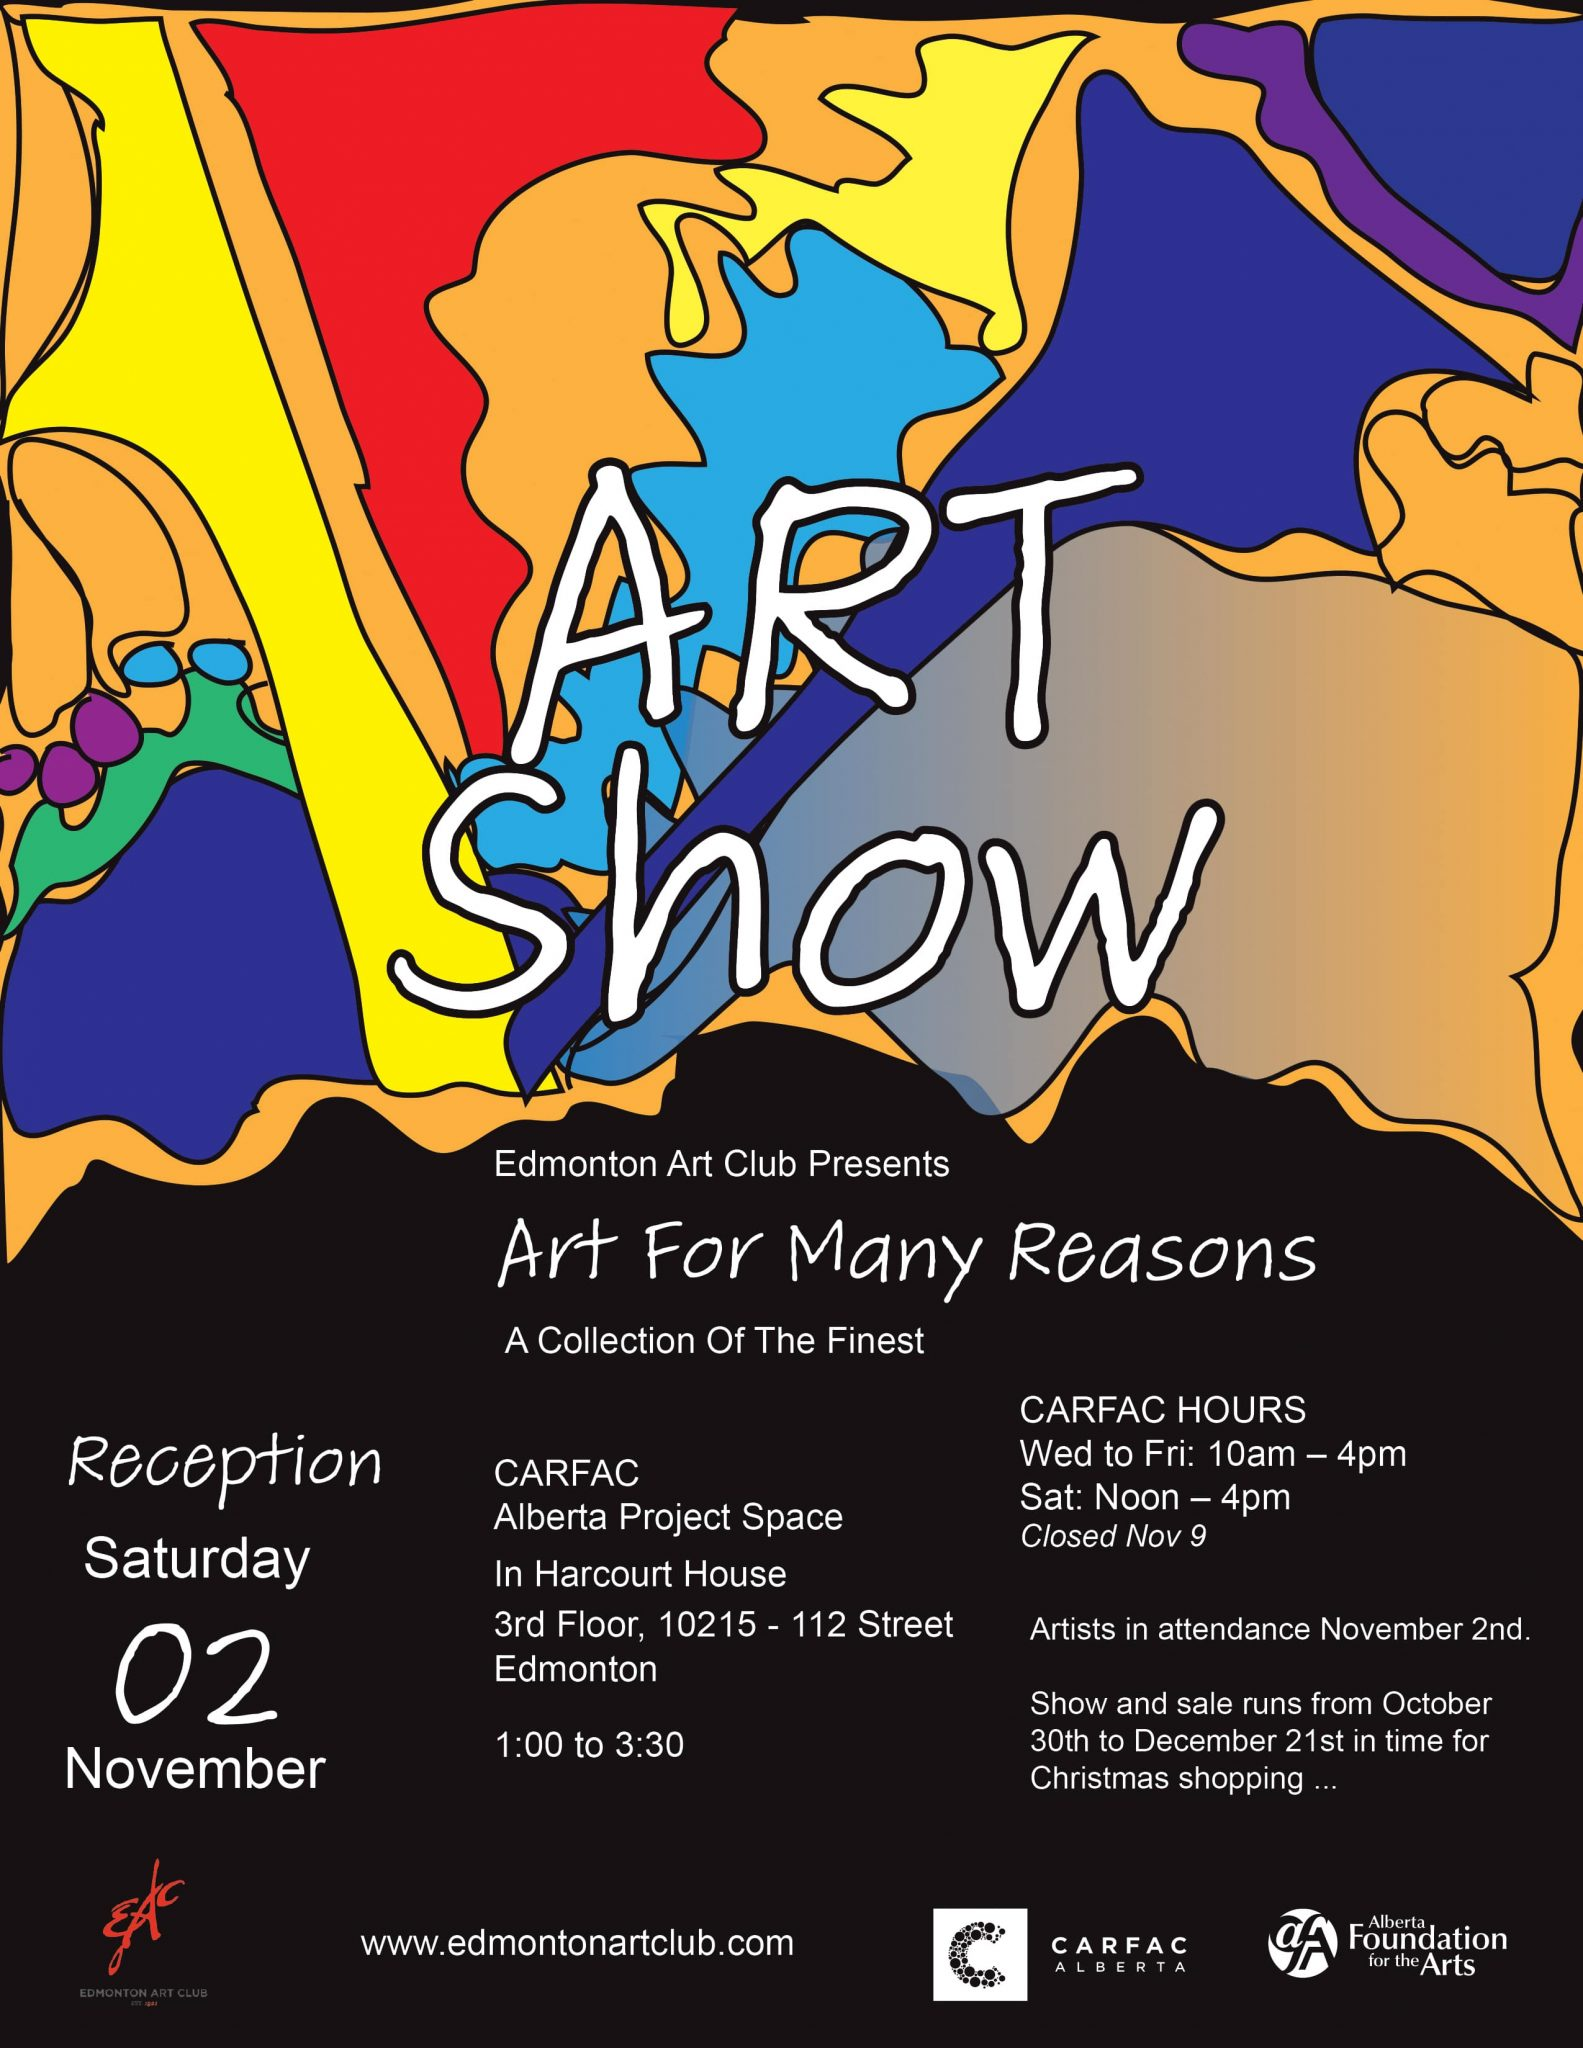 Poster for Art For Many Reasons: A Collection Of The Finest